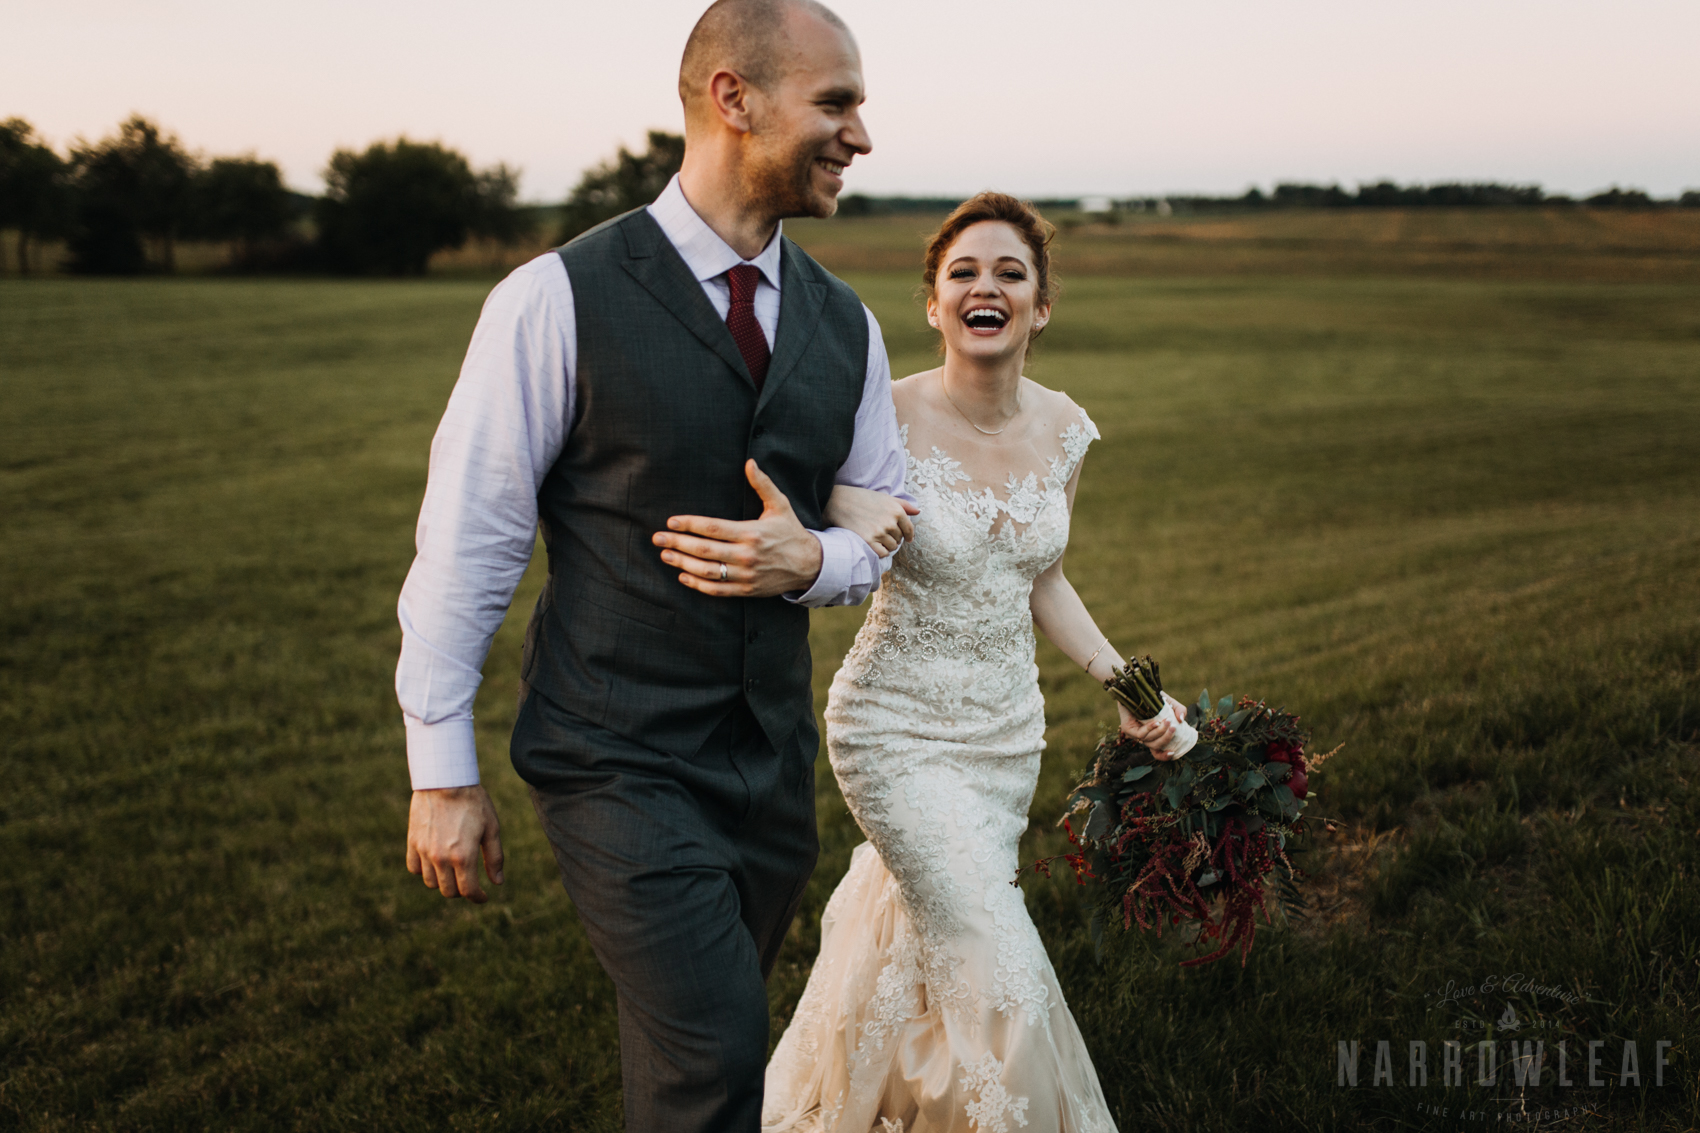 bride-groom-romantic-sunset-photos-rustys-hitching-post-event-center-new-richmond-wi-63.jpg